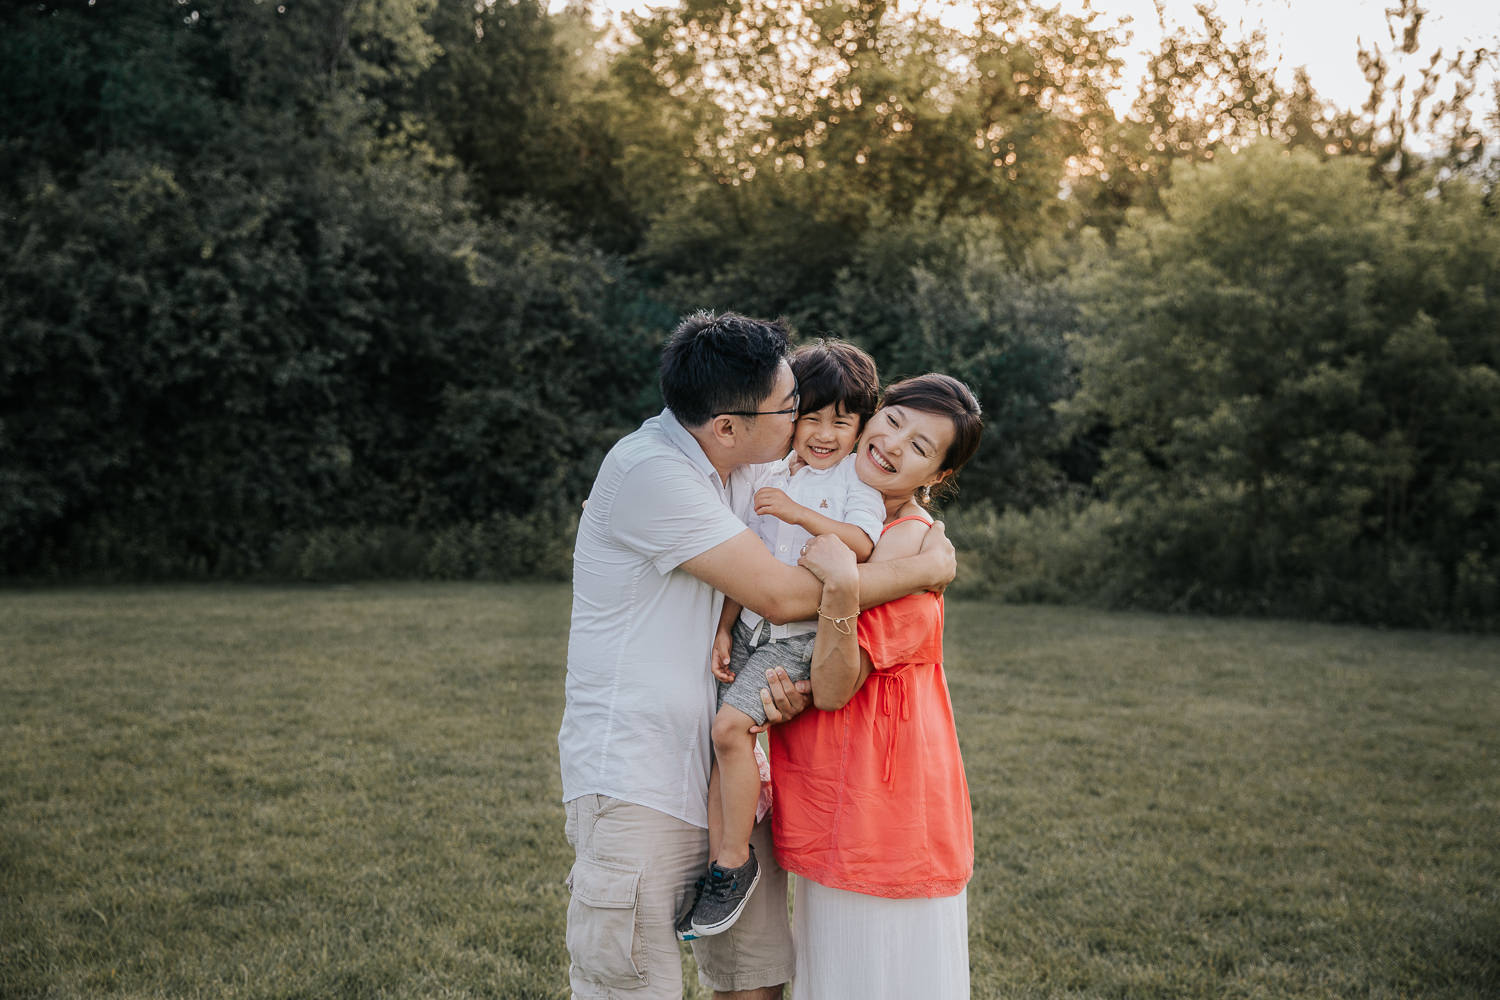 family of 3 standing in park, mom and dad embracing 3 year old toddler son between them, dad kissing boy on cheek - Markham In-Home Photos